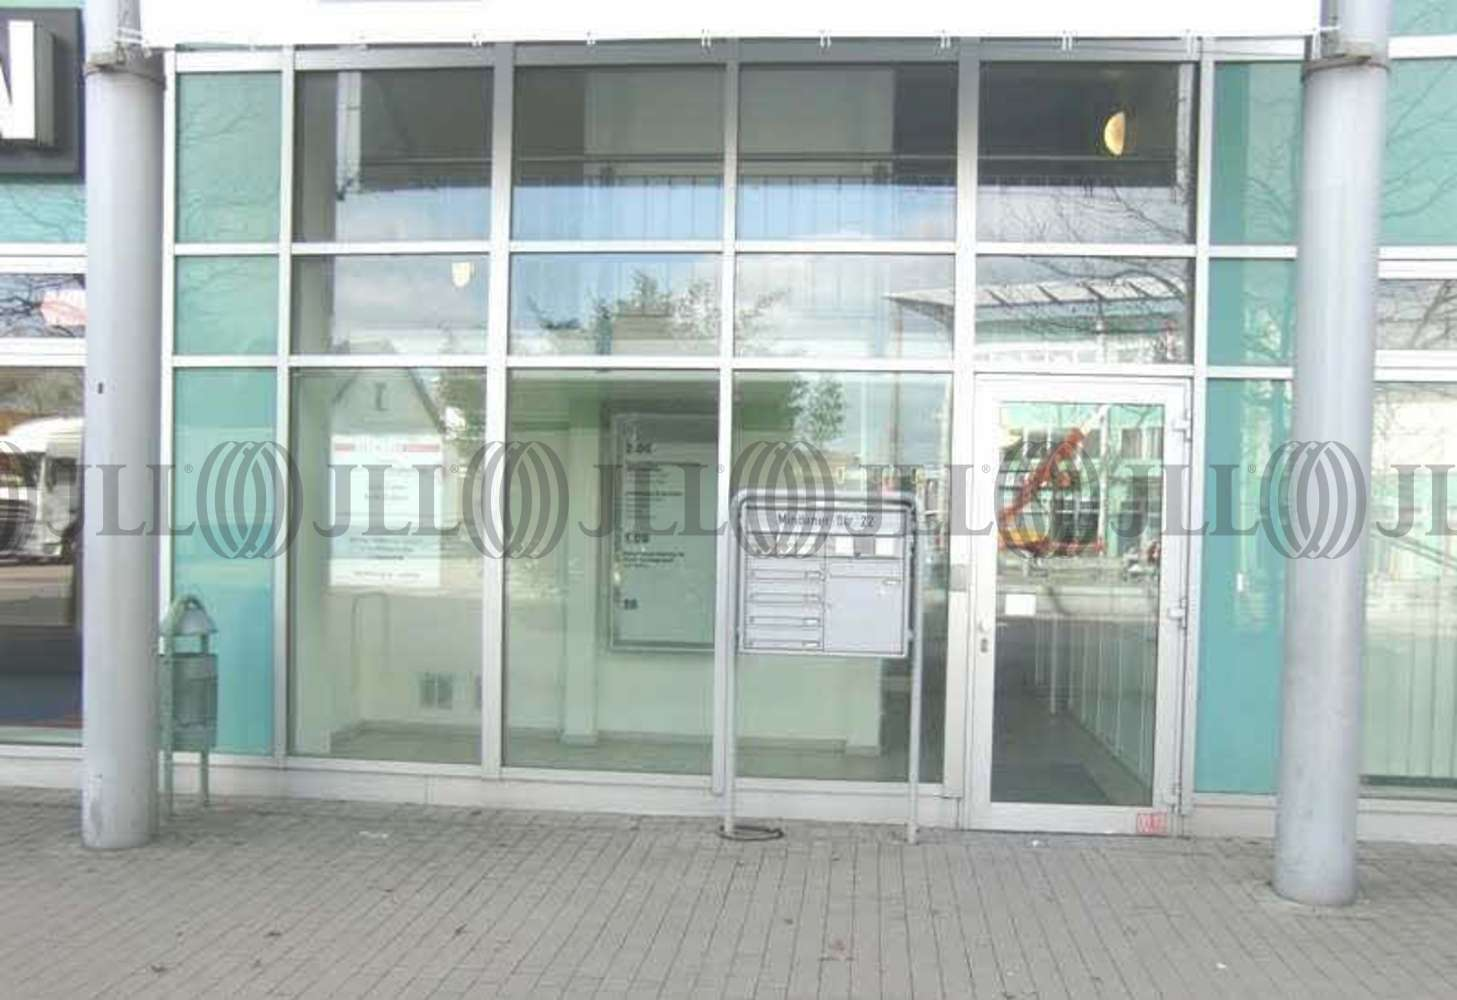 Büros Bad oeynhausen, 32547